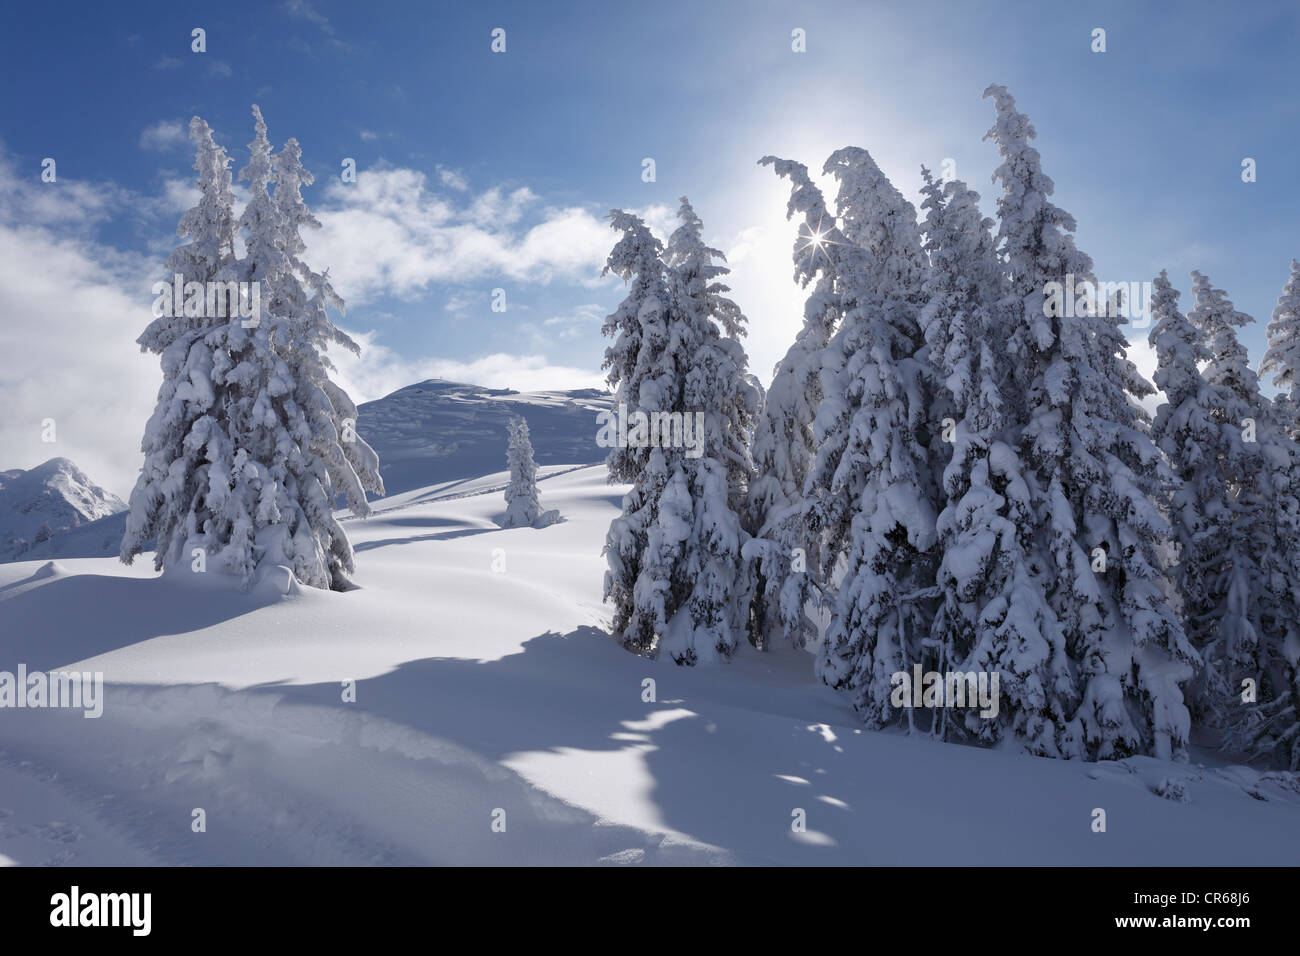 Austria, Styria, View of snow covered firs on Gasslhohe mountain - Stock Image